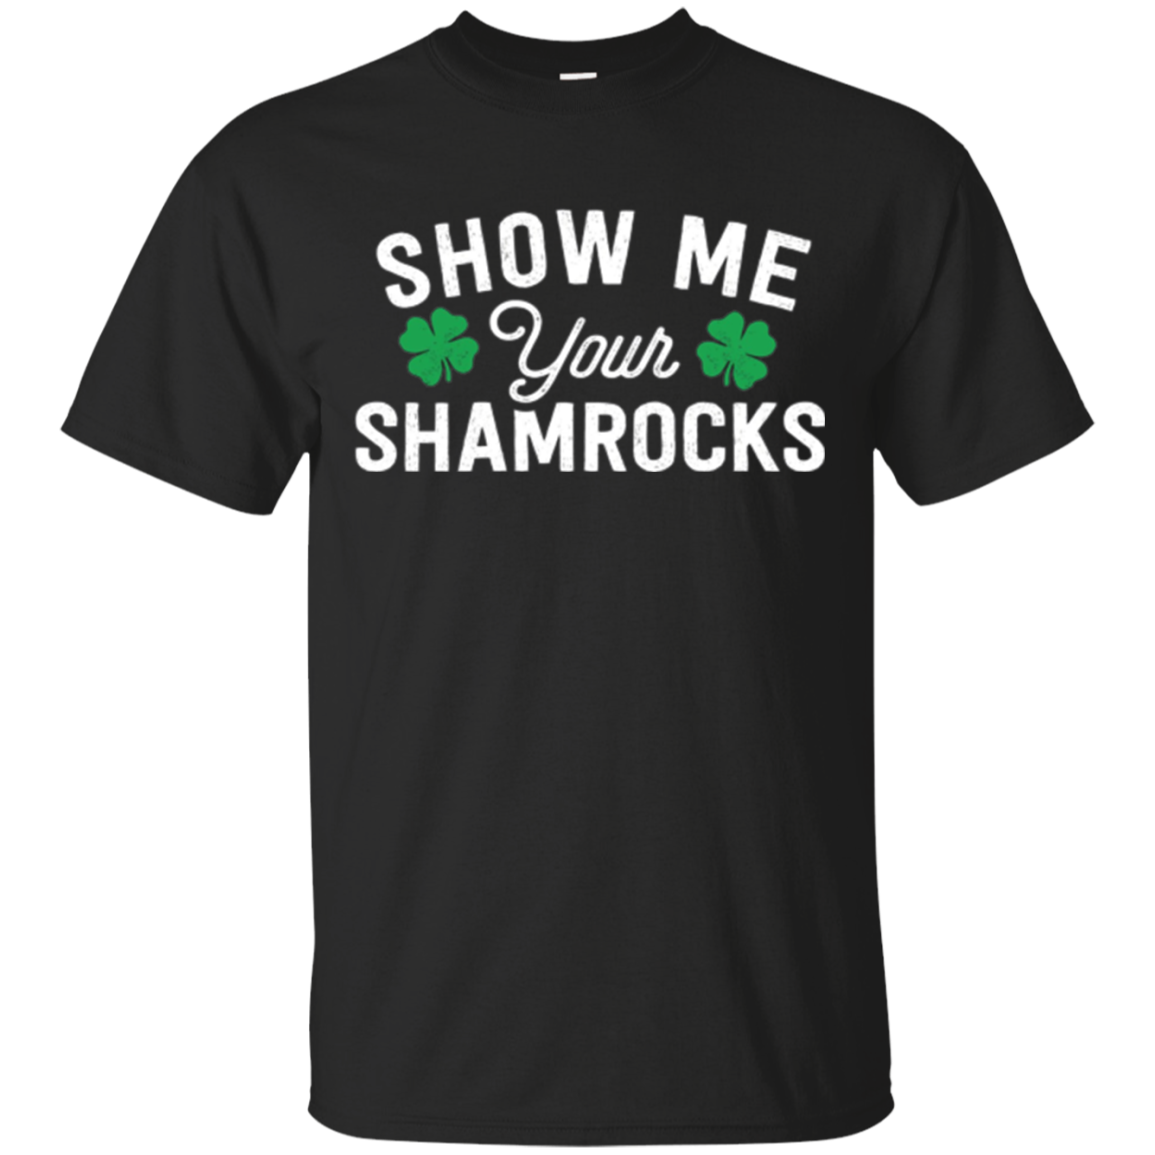 Show Me Your Shamrocks - St Patrick's Day Long Sleeve Tshirt